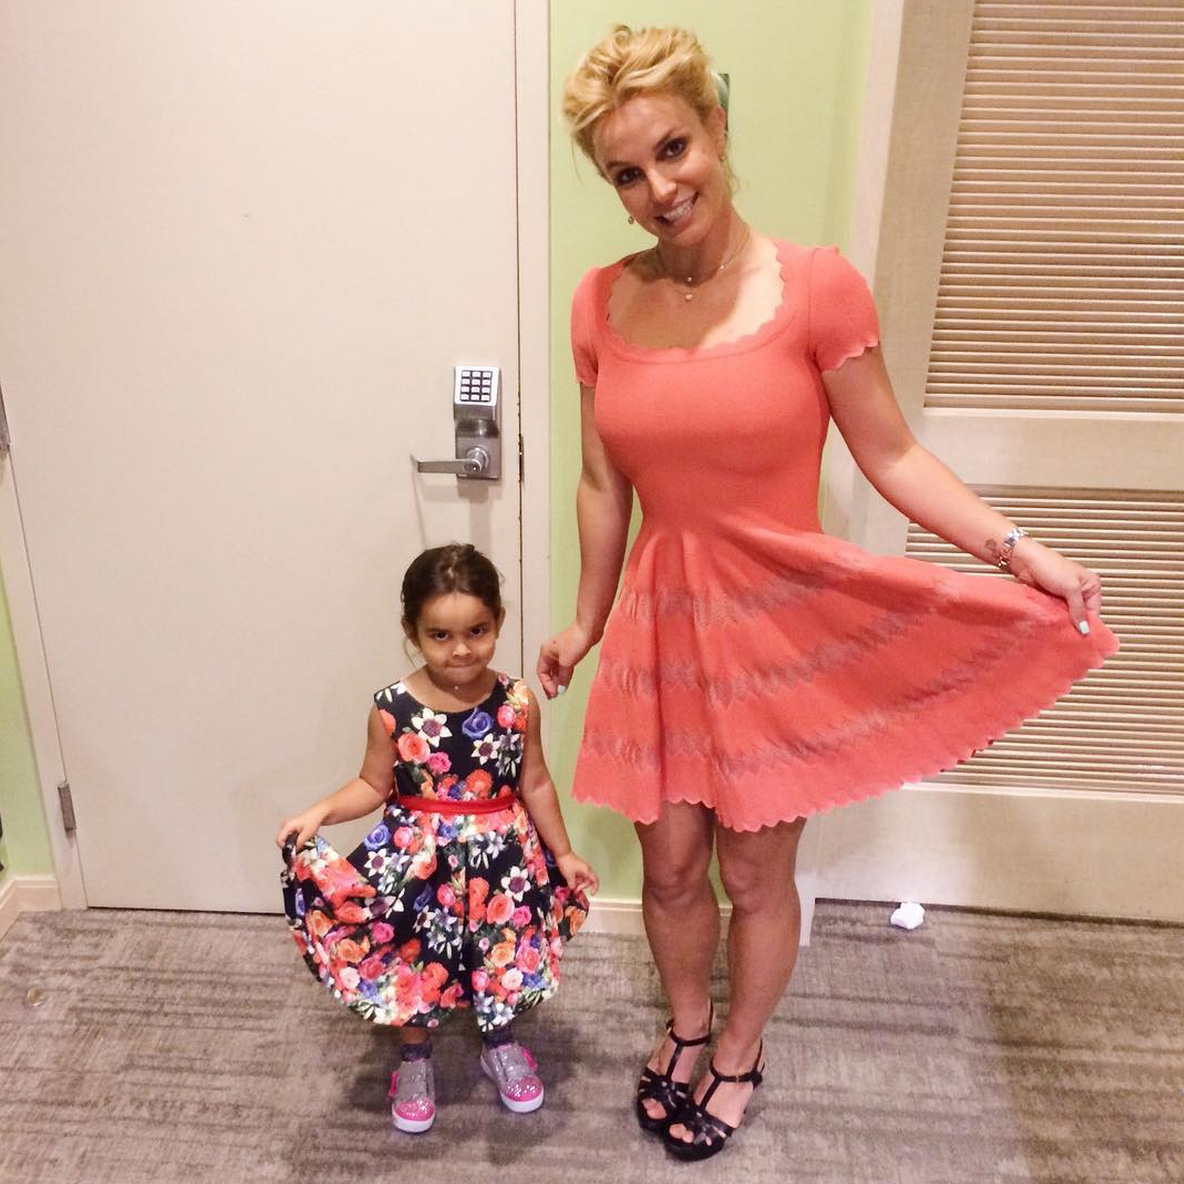 Britney Sears posts a photo of her and a little girl on instagram in pretty dresses